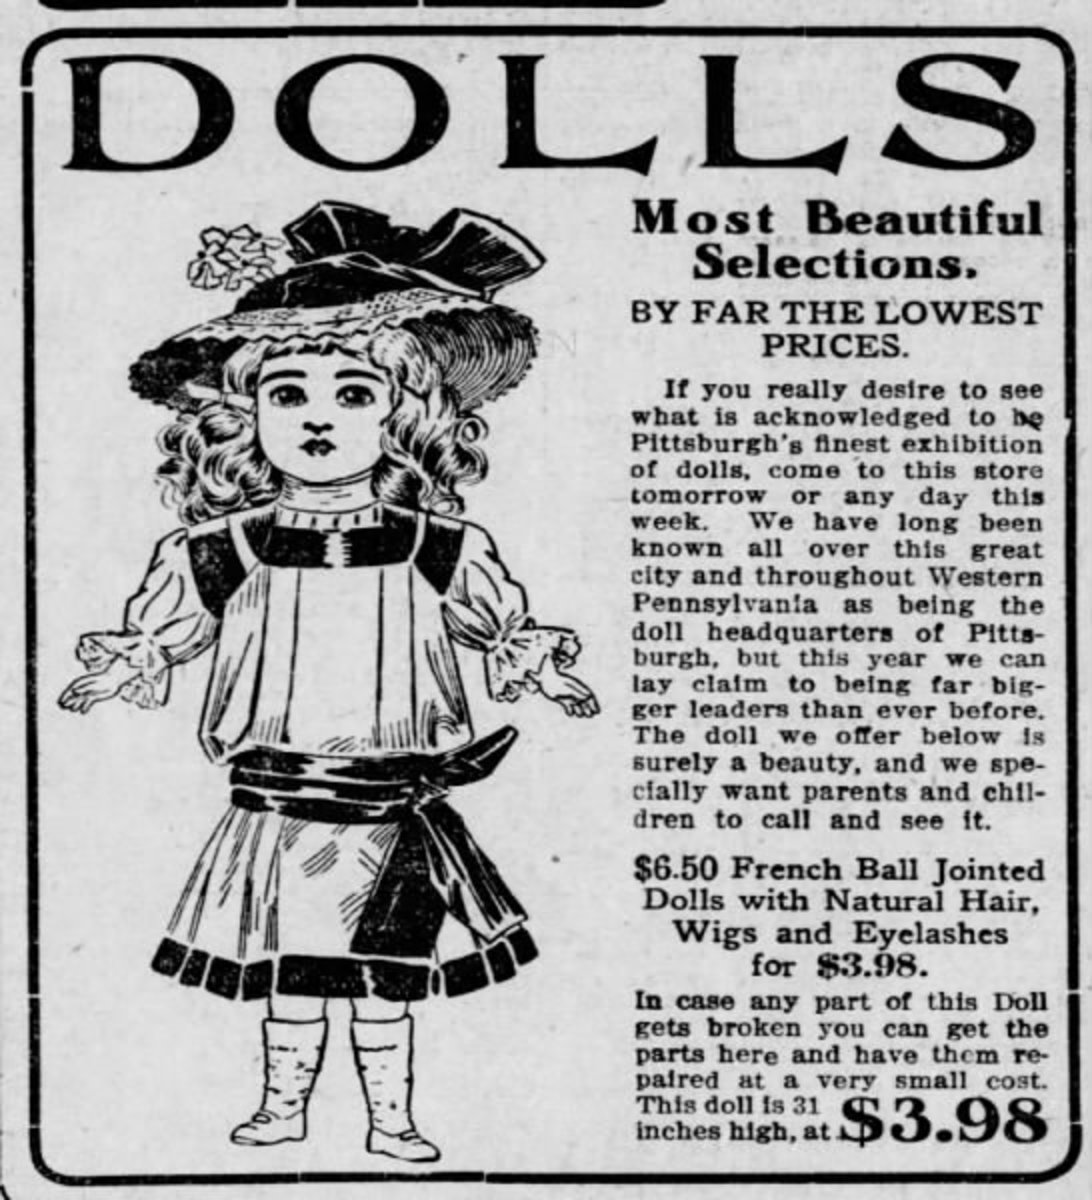 Just imagine, in 1910, you could buy a beautiful doll like this for $3.98. Clipped from The Pittsburgh Press, 18 Dec 1910, Sun, Page 11